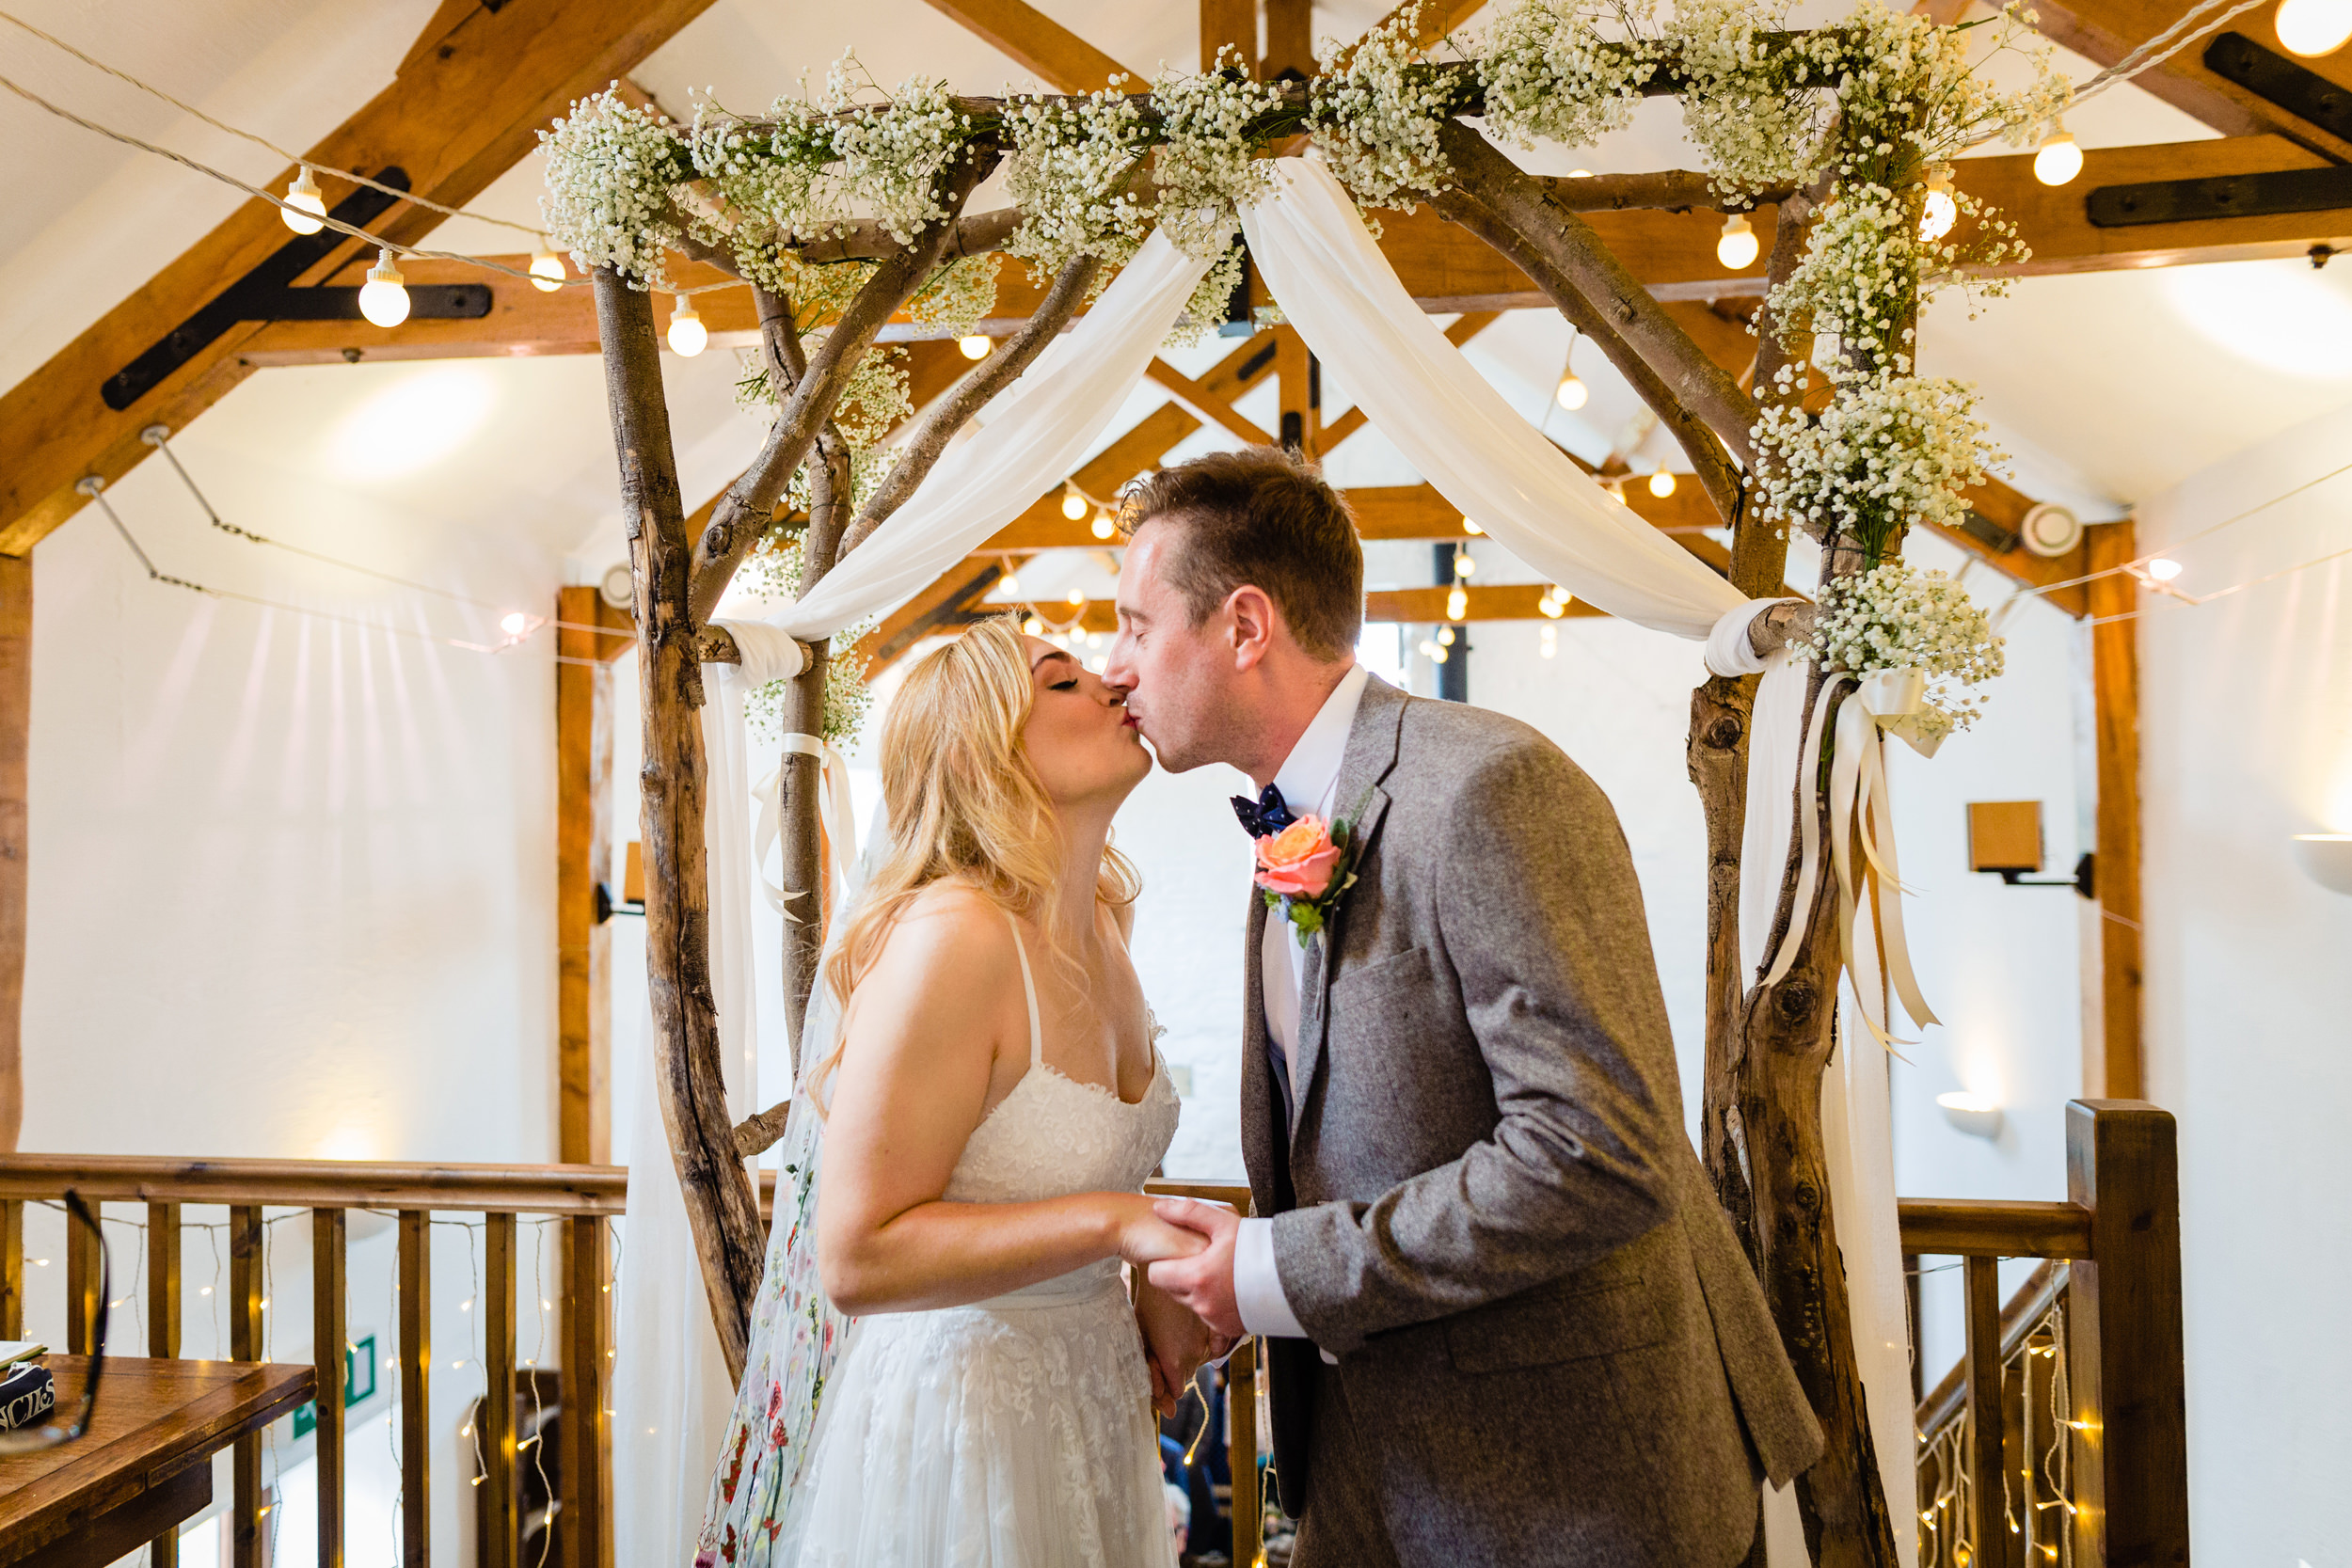 bride and grooms first kiss. wildwood and eden wedding photography by emma and rich.